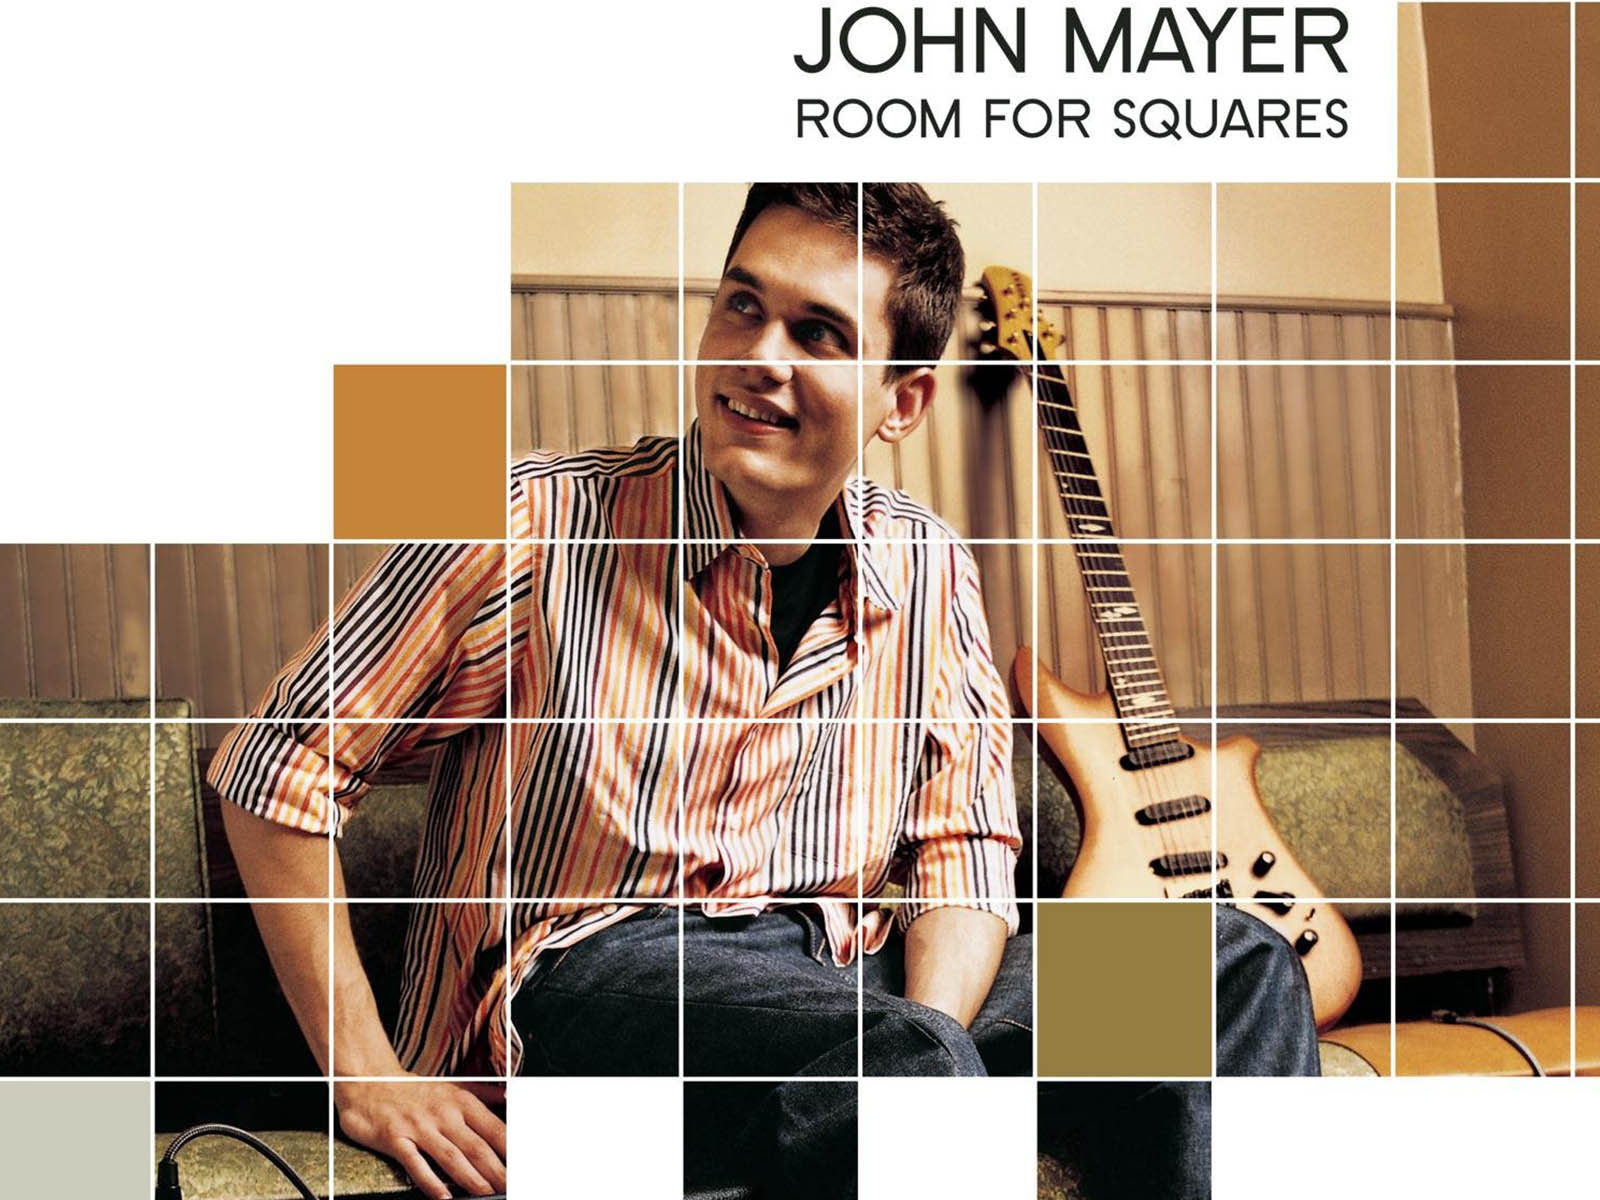 john-mayer-room-for-squares.jpg